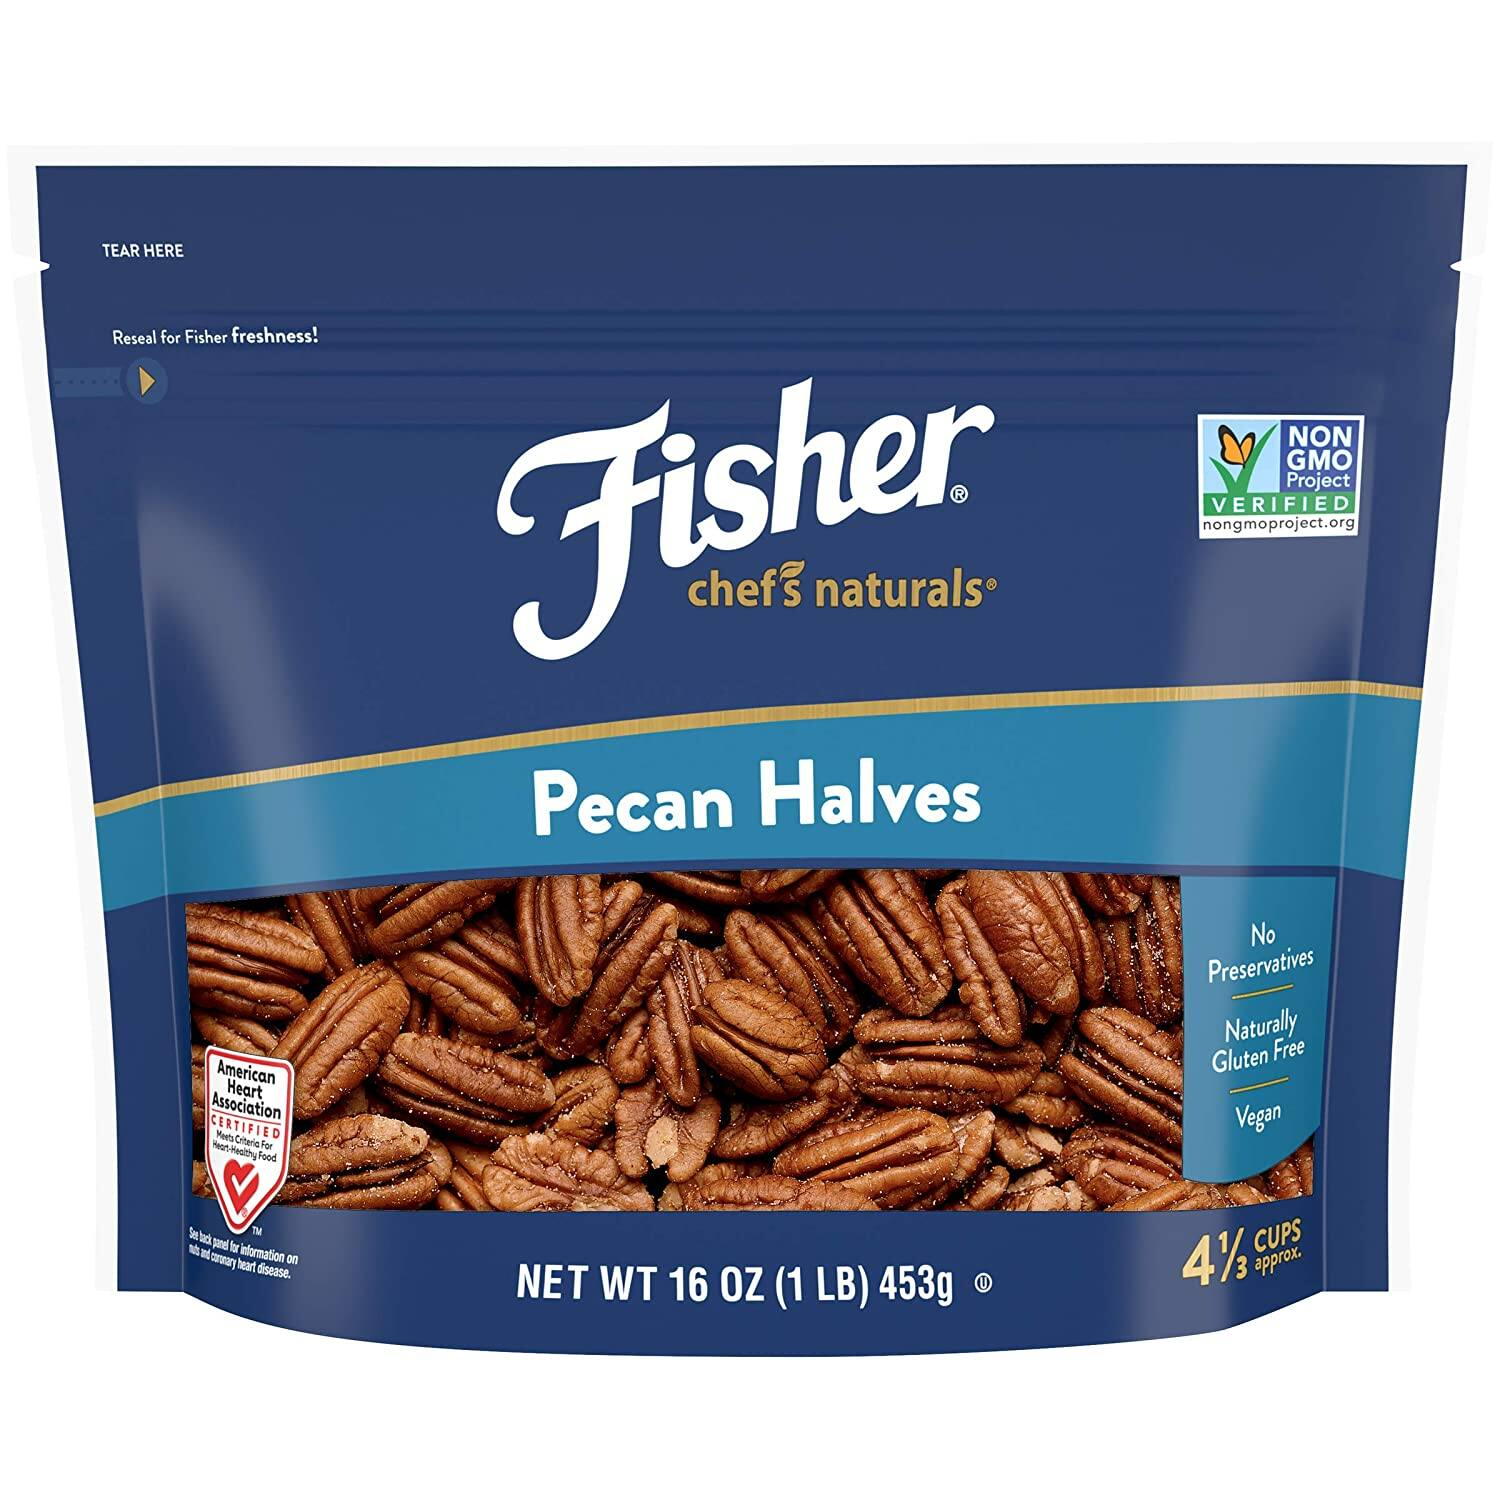 Fisher Chef's Naturals Pecan Halves 1lb $3.52 with s/s